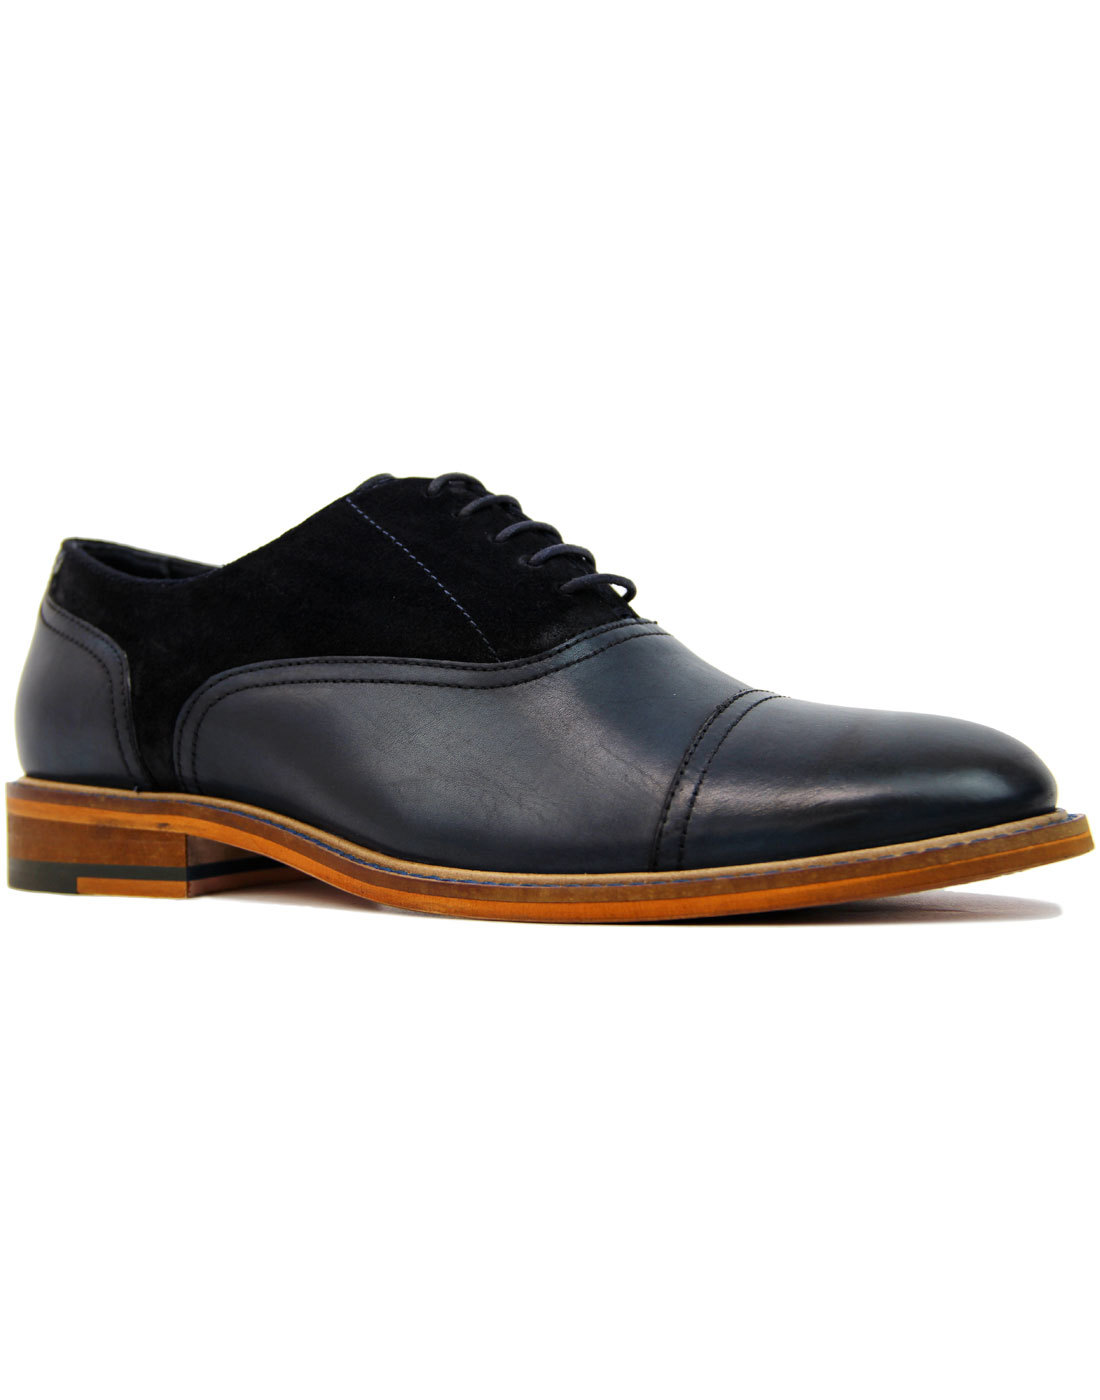 Ryder PAOLO VANDINI Suede & Leather Saddle Shoes N